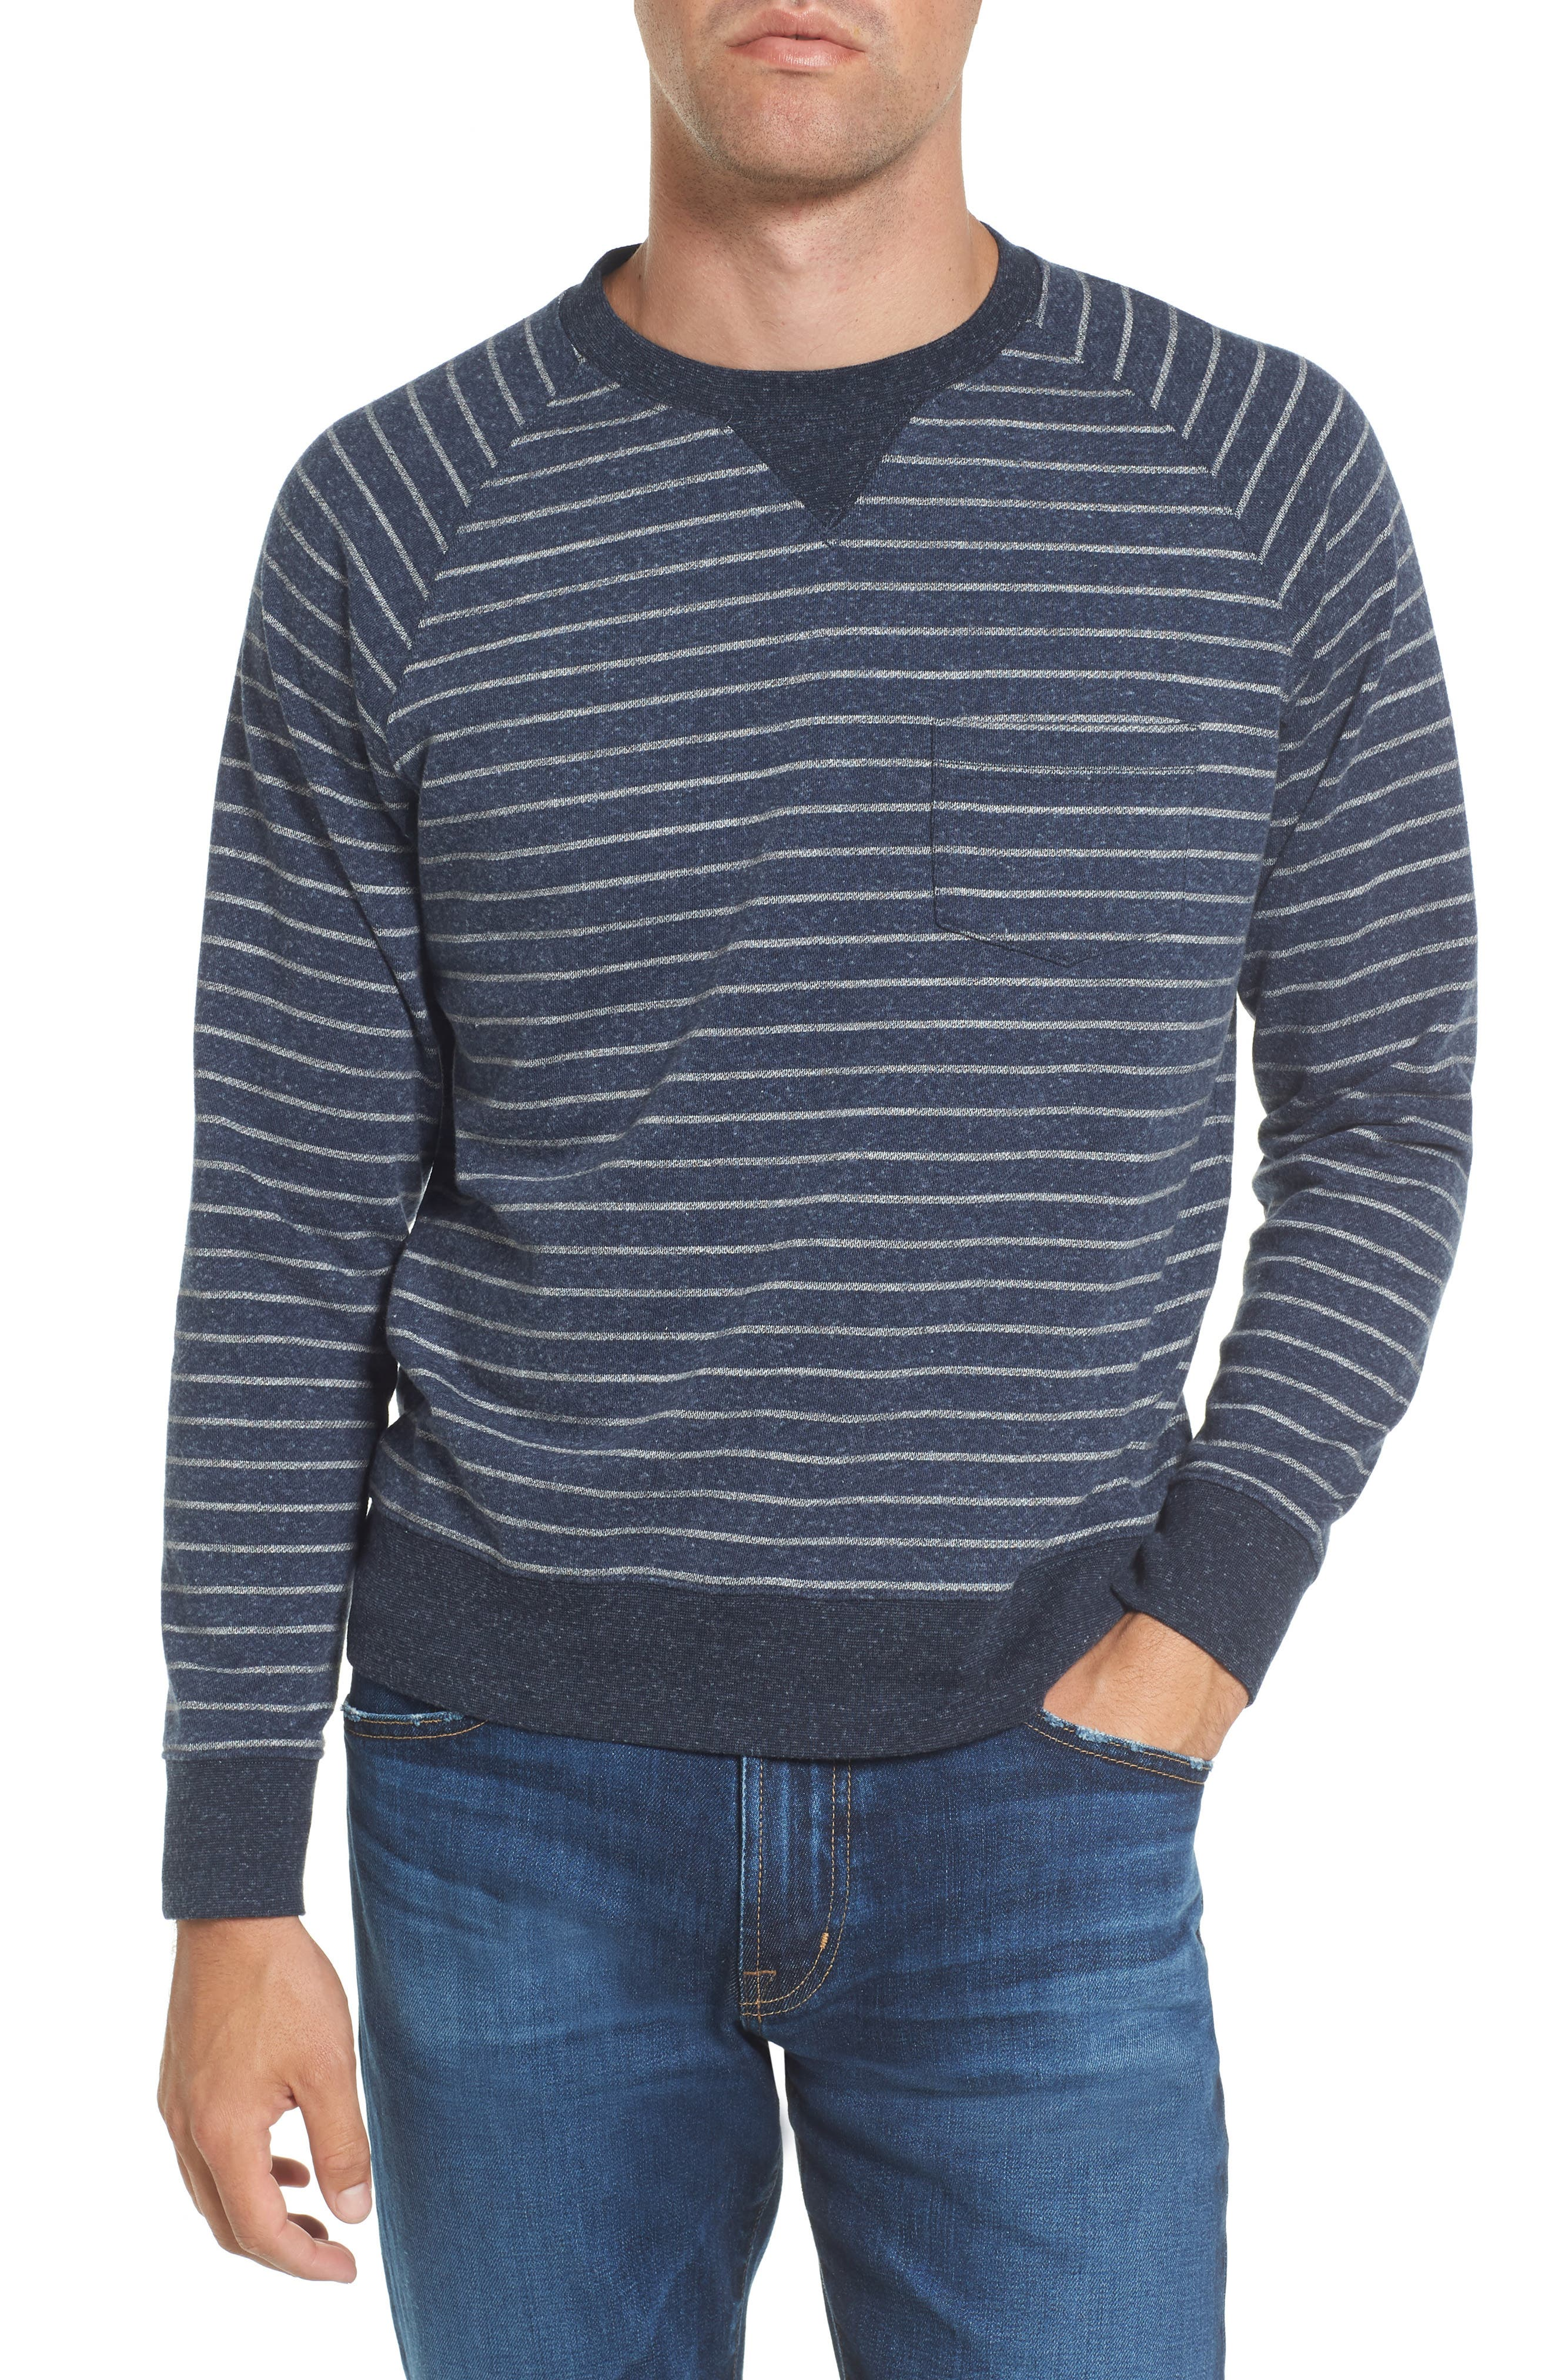 Palmer Modern Fit Athletic Stripe Sweatshirt,                             Main thumbnail 1, color,                             Navy/ Gray Heather